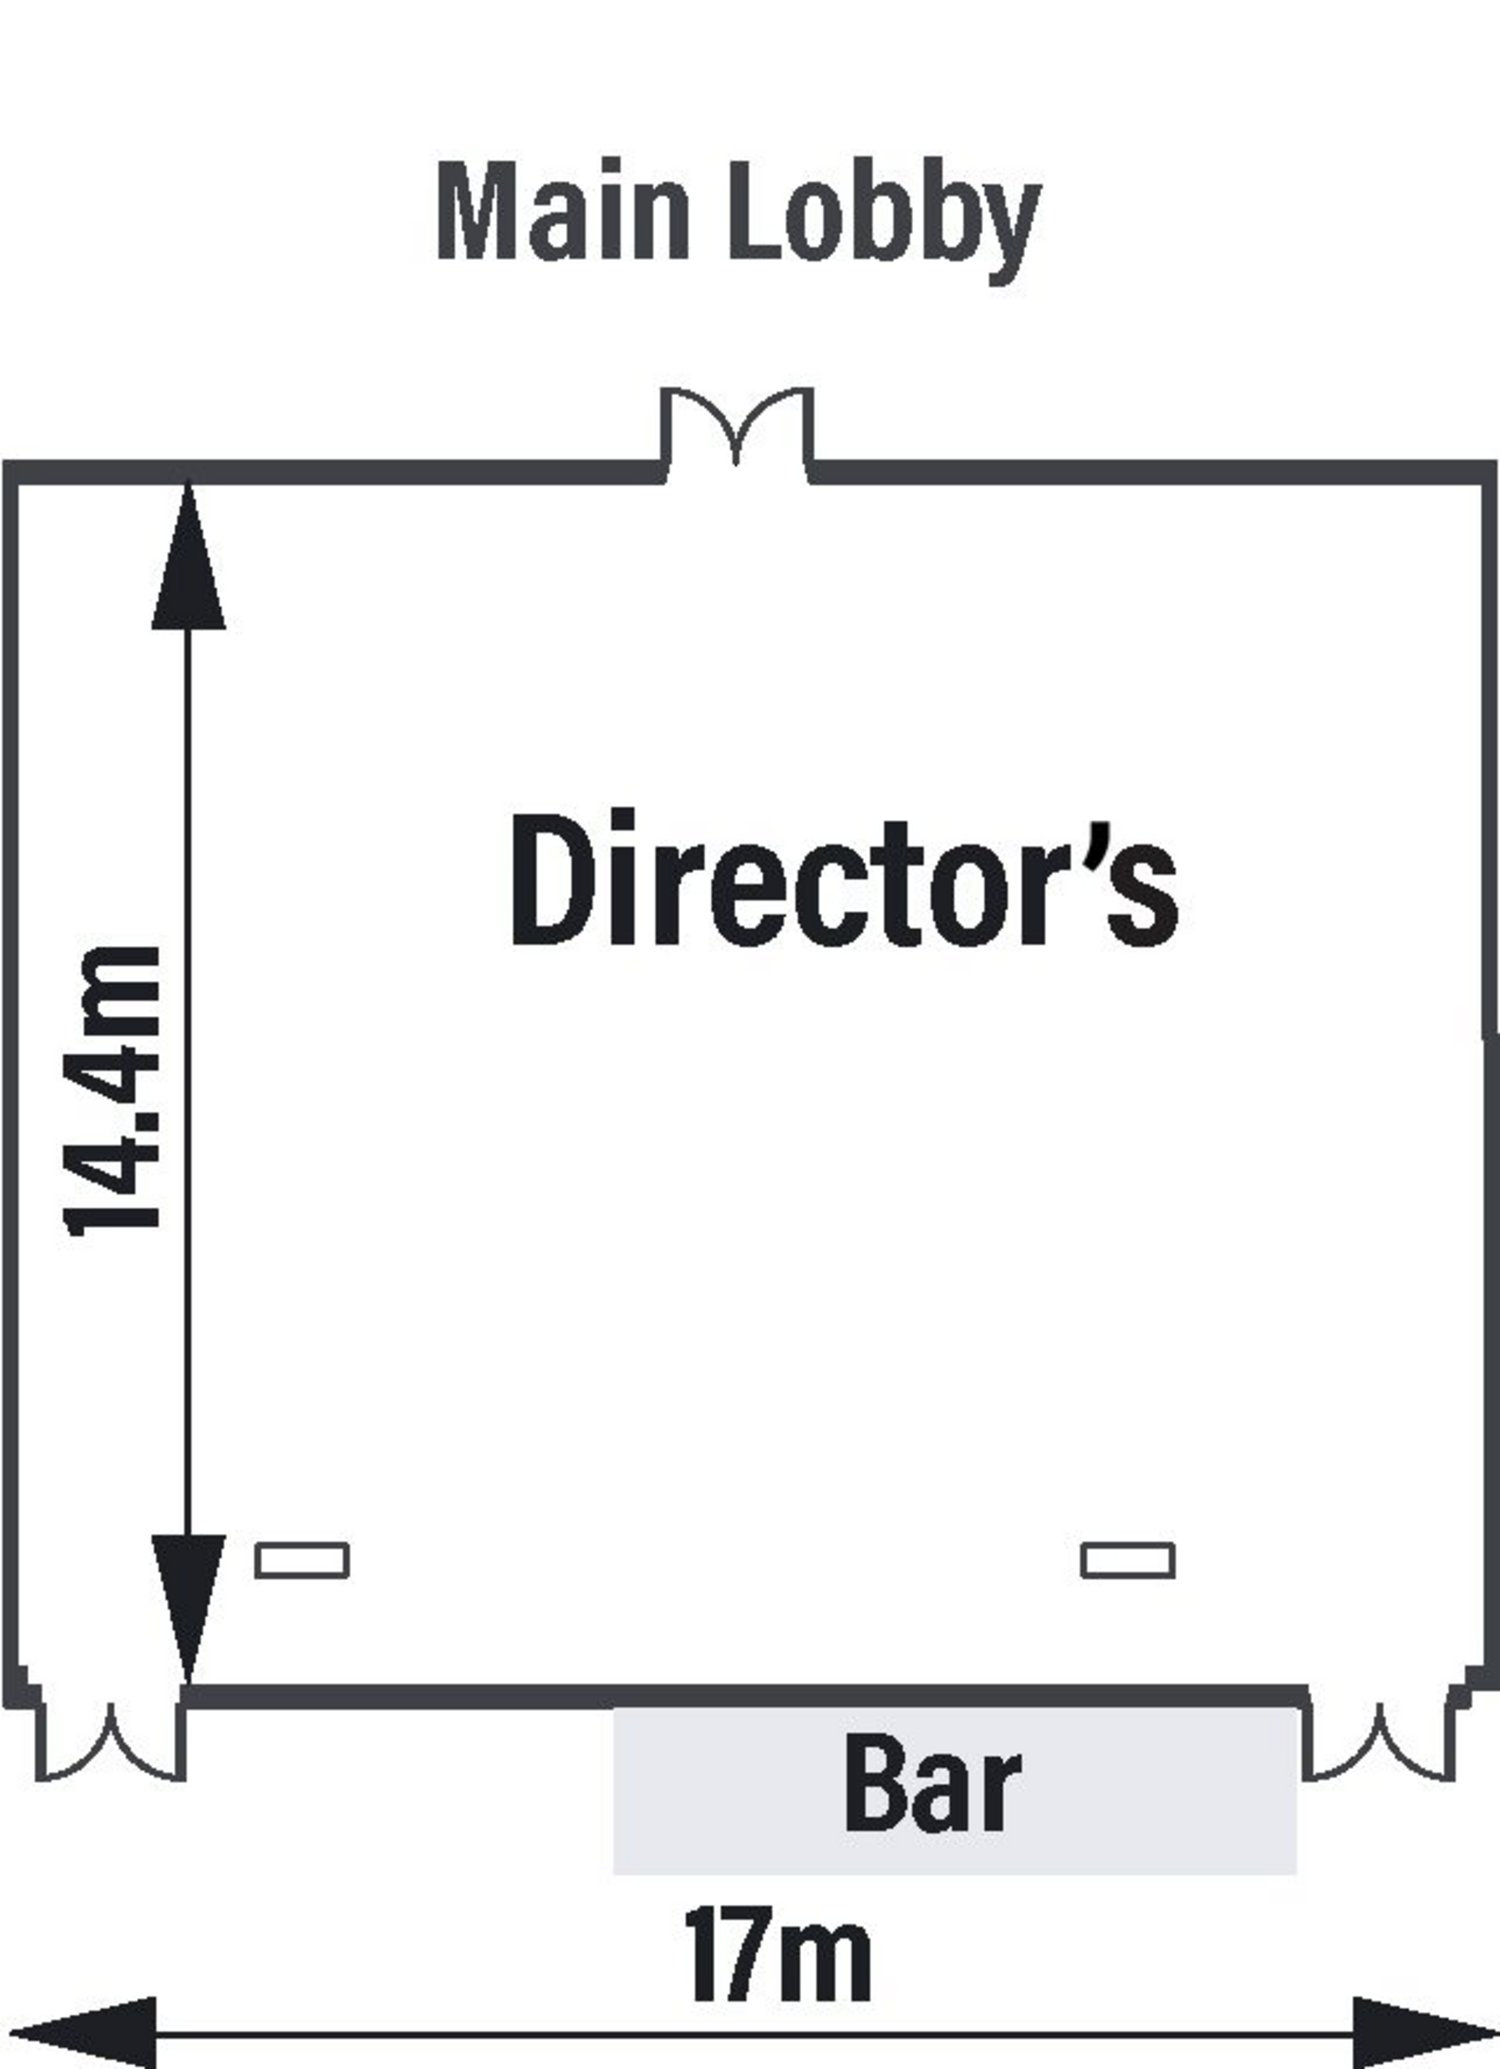 Director's Lounge Floorplan